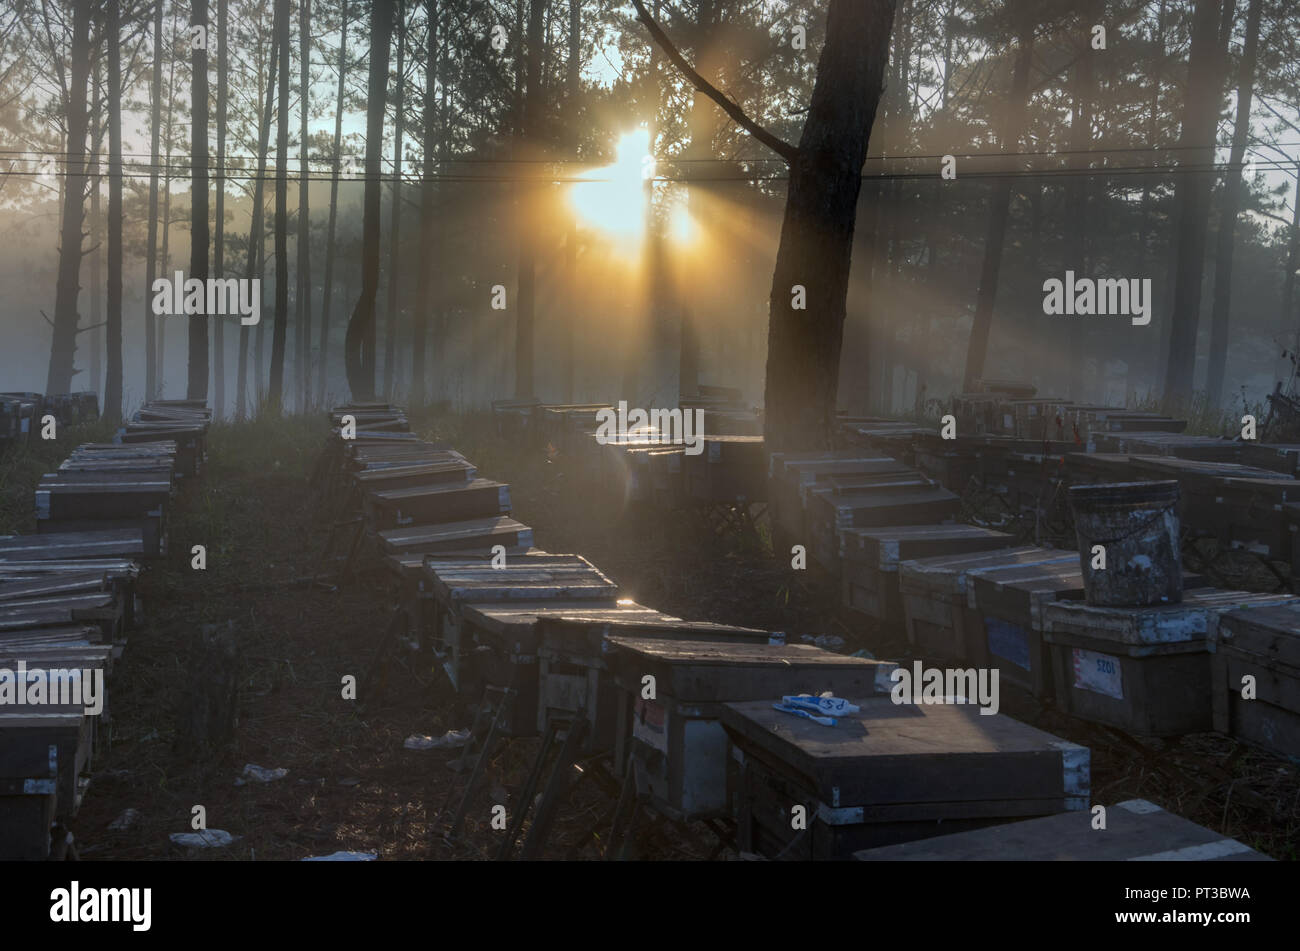 The bee farm, beekeepers, environmental friendly nature. Photo taken at the sunrise with best sunrays, magic of the light, sunshine and fog - Stock Image